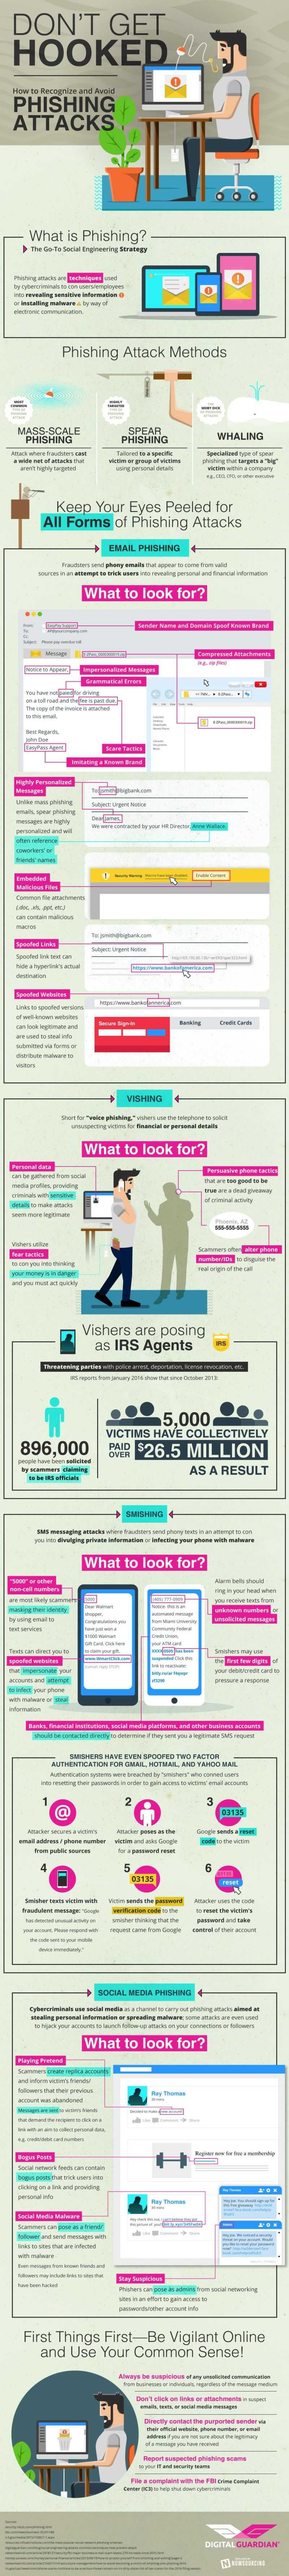 Phishing-avoid-infographic-773ad5a893236183a55e96e3f80ca97f7bcd7466